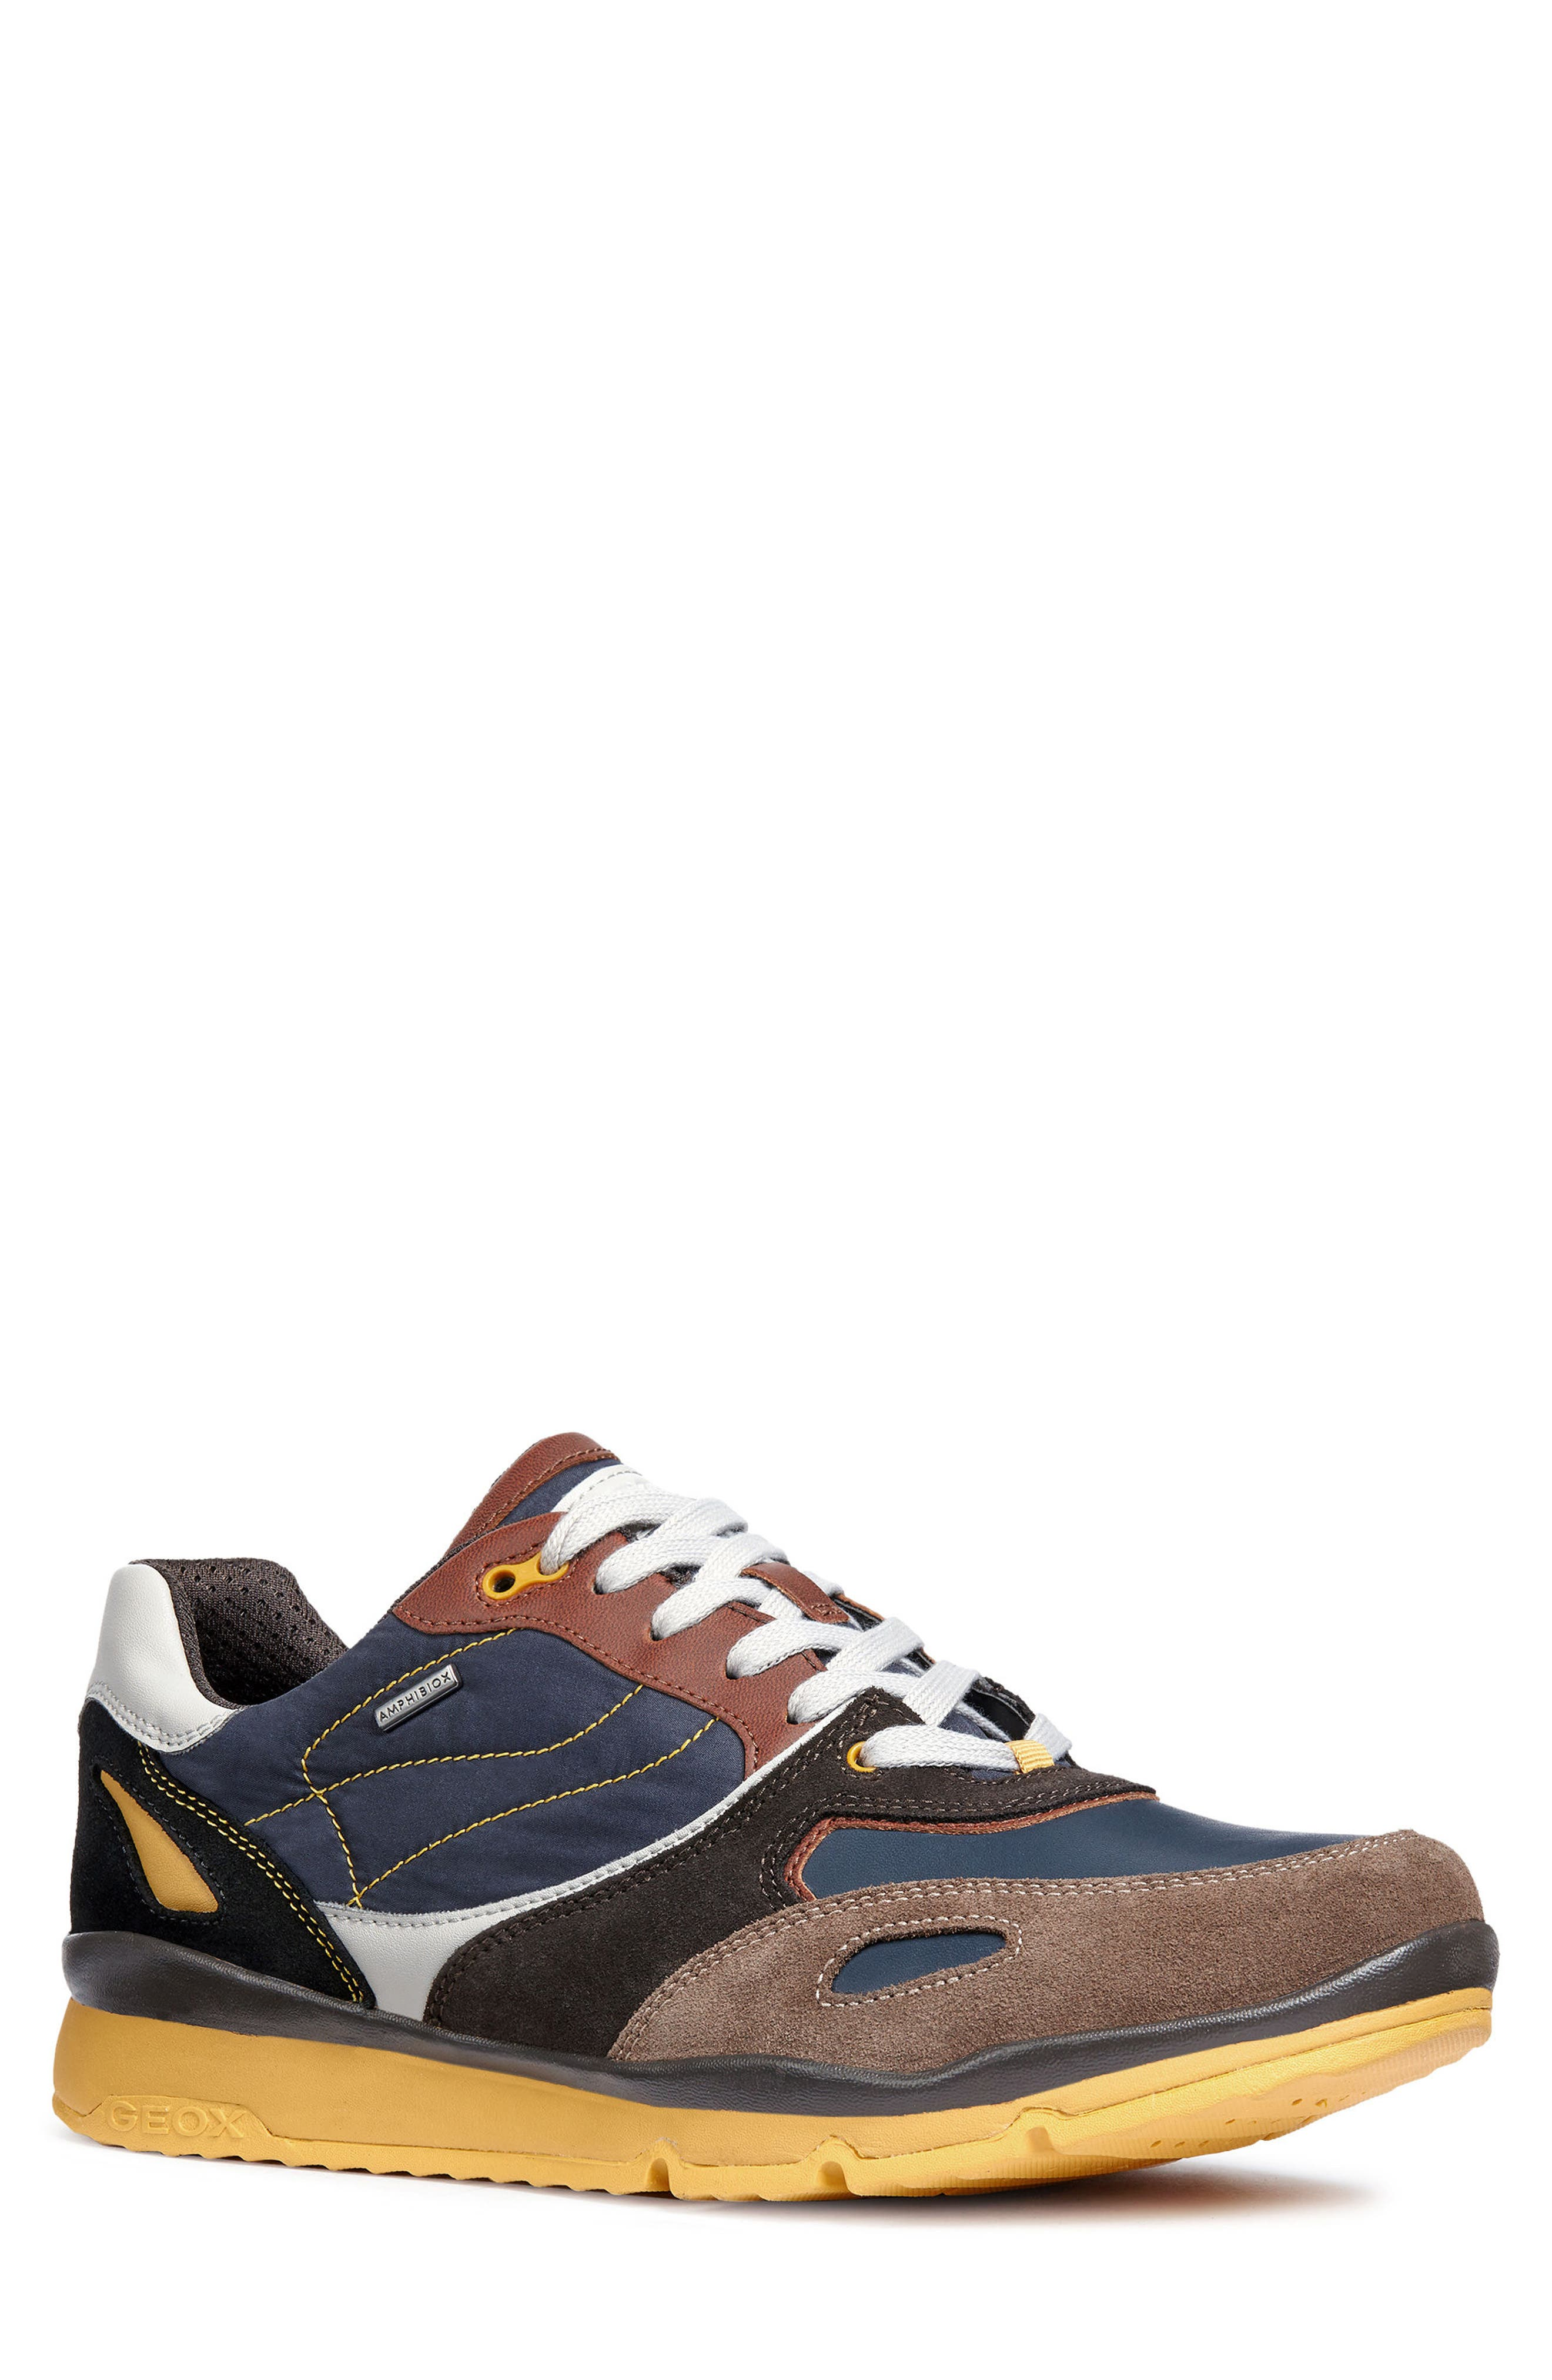 Sandford ABX 1 Waterproof Low Top Sneaker,                             Main thumbnail 1, color,                             CHOCOLATE/ NAVY LEATHER